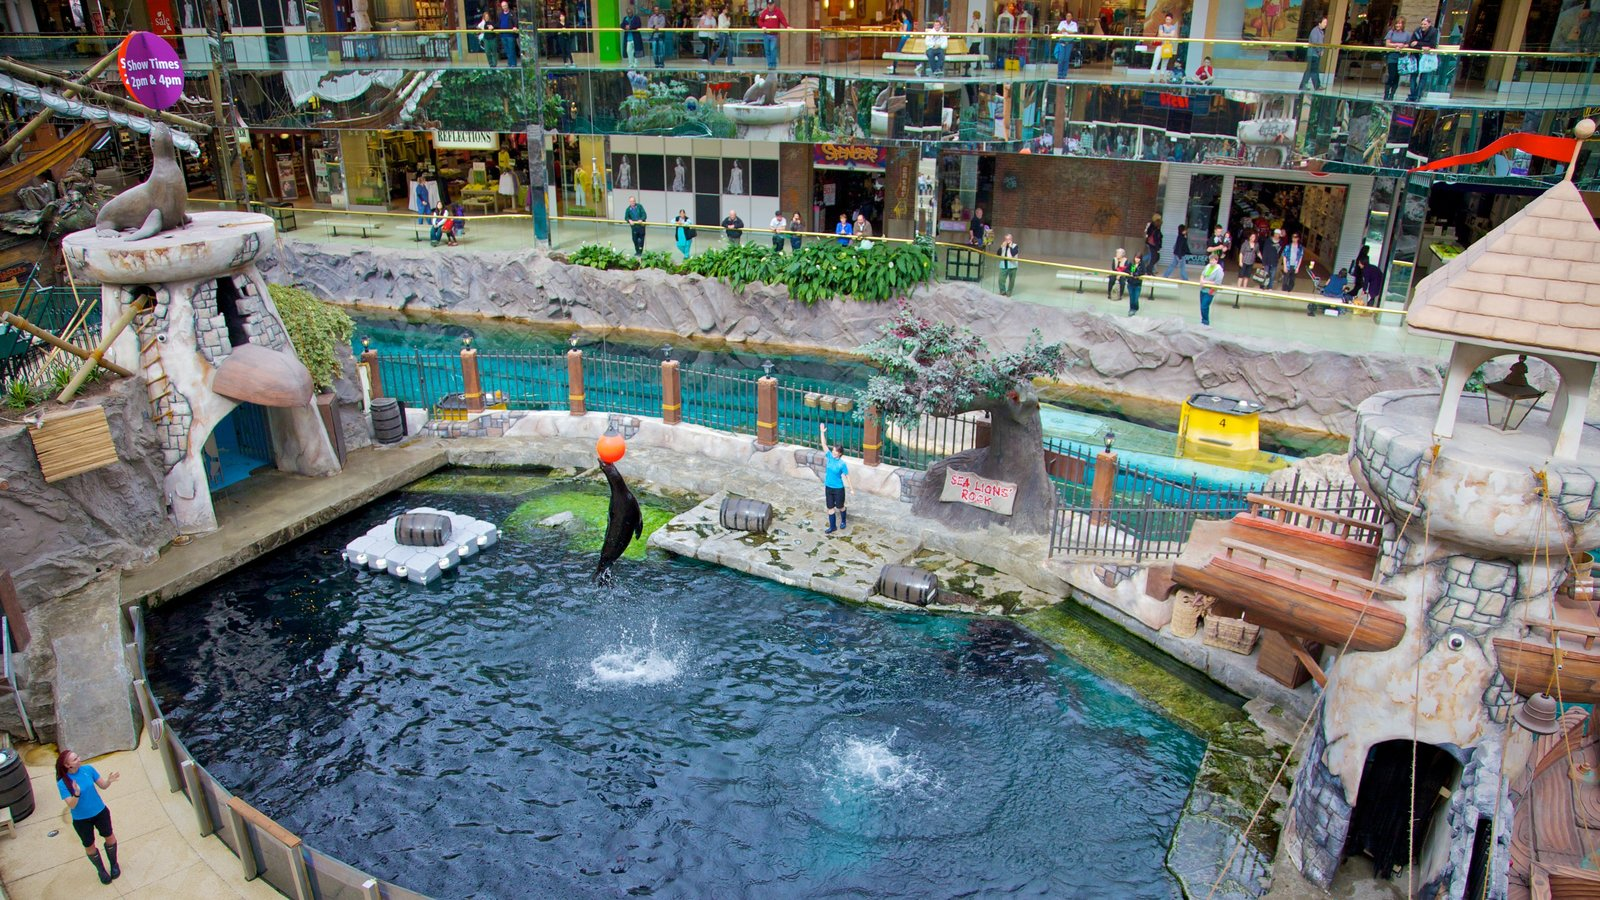 West Edmonton Mall featuring a water park and zoo animals